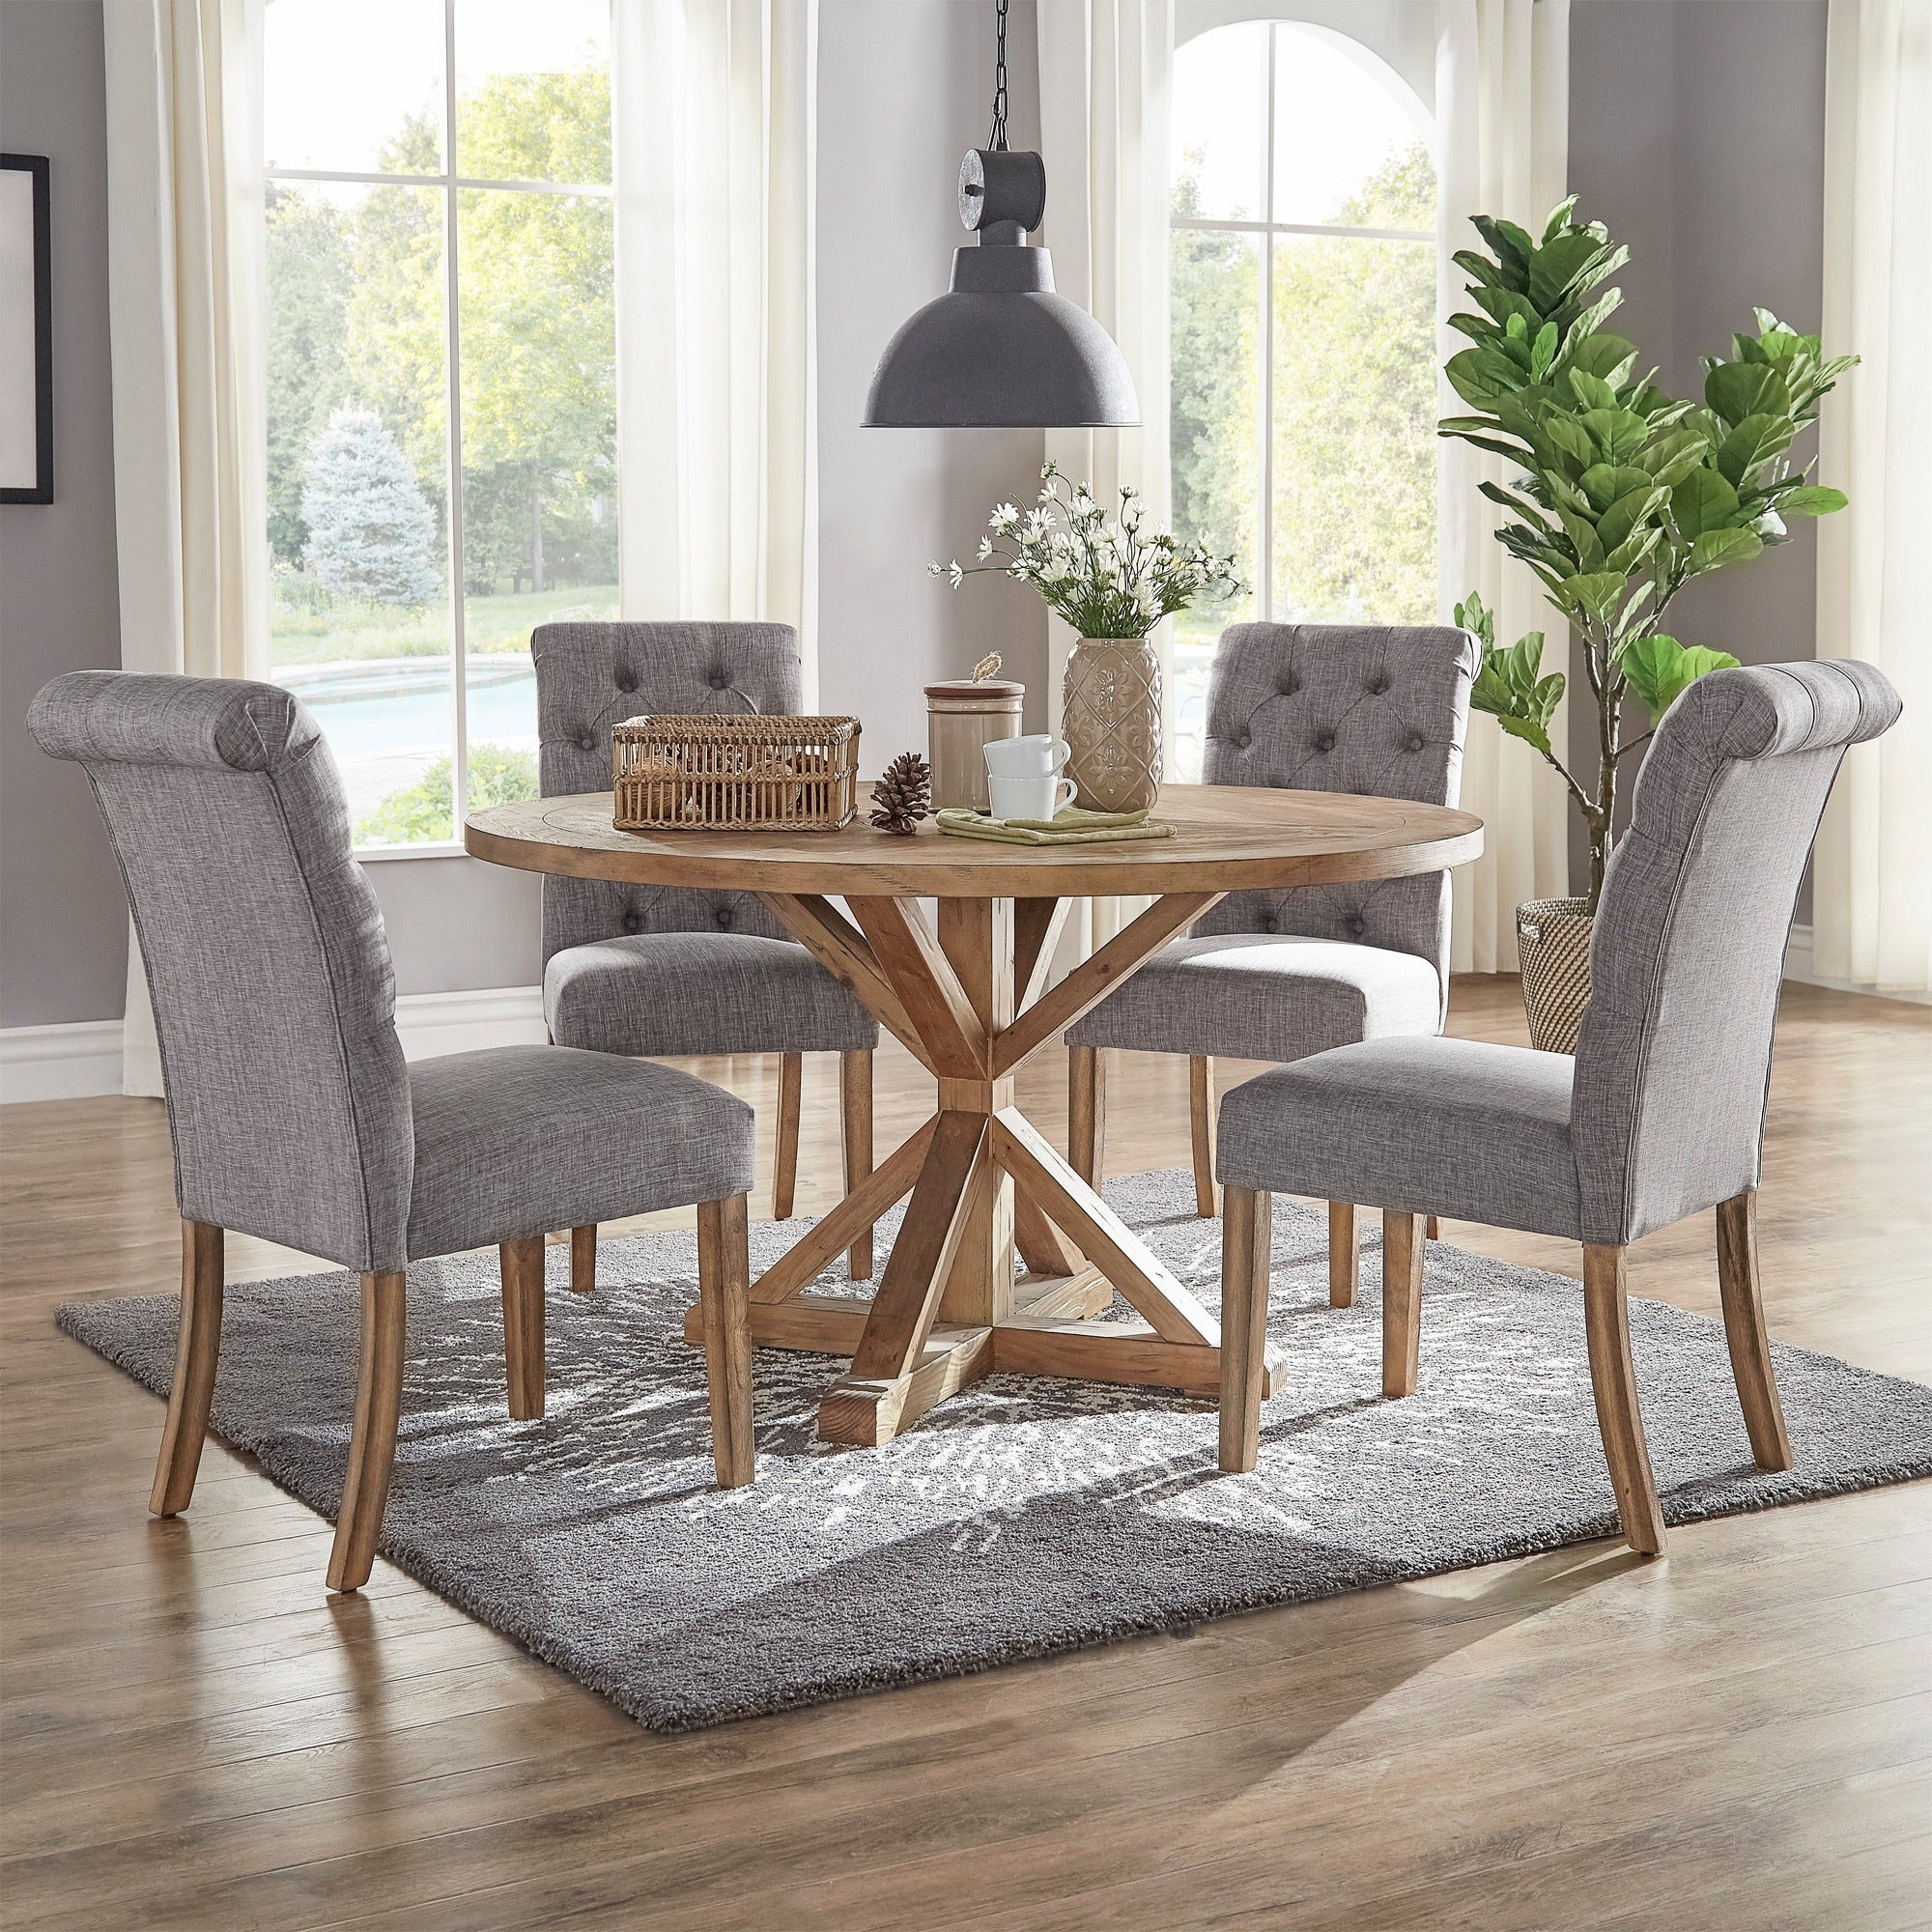 of round living table rug crossed livings amegawood excellent glass with chrome polished dining room awesome